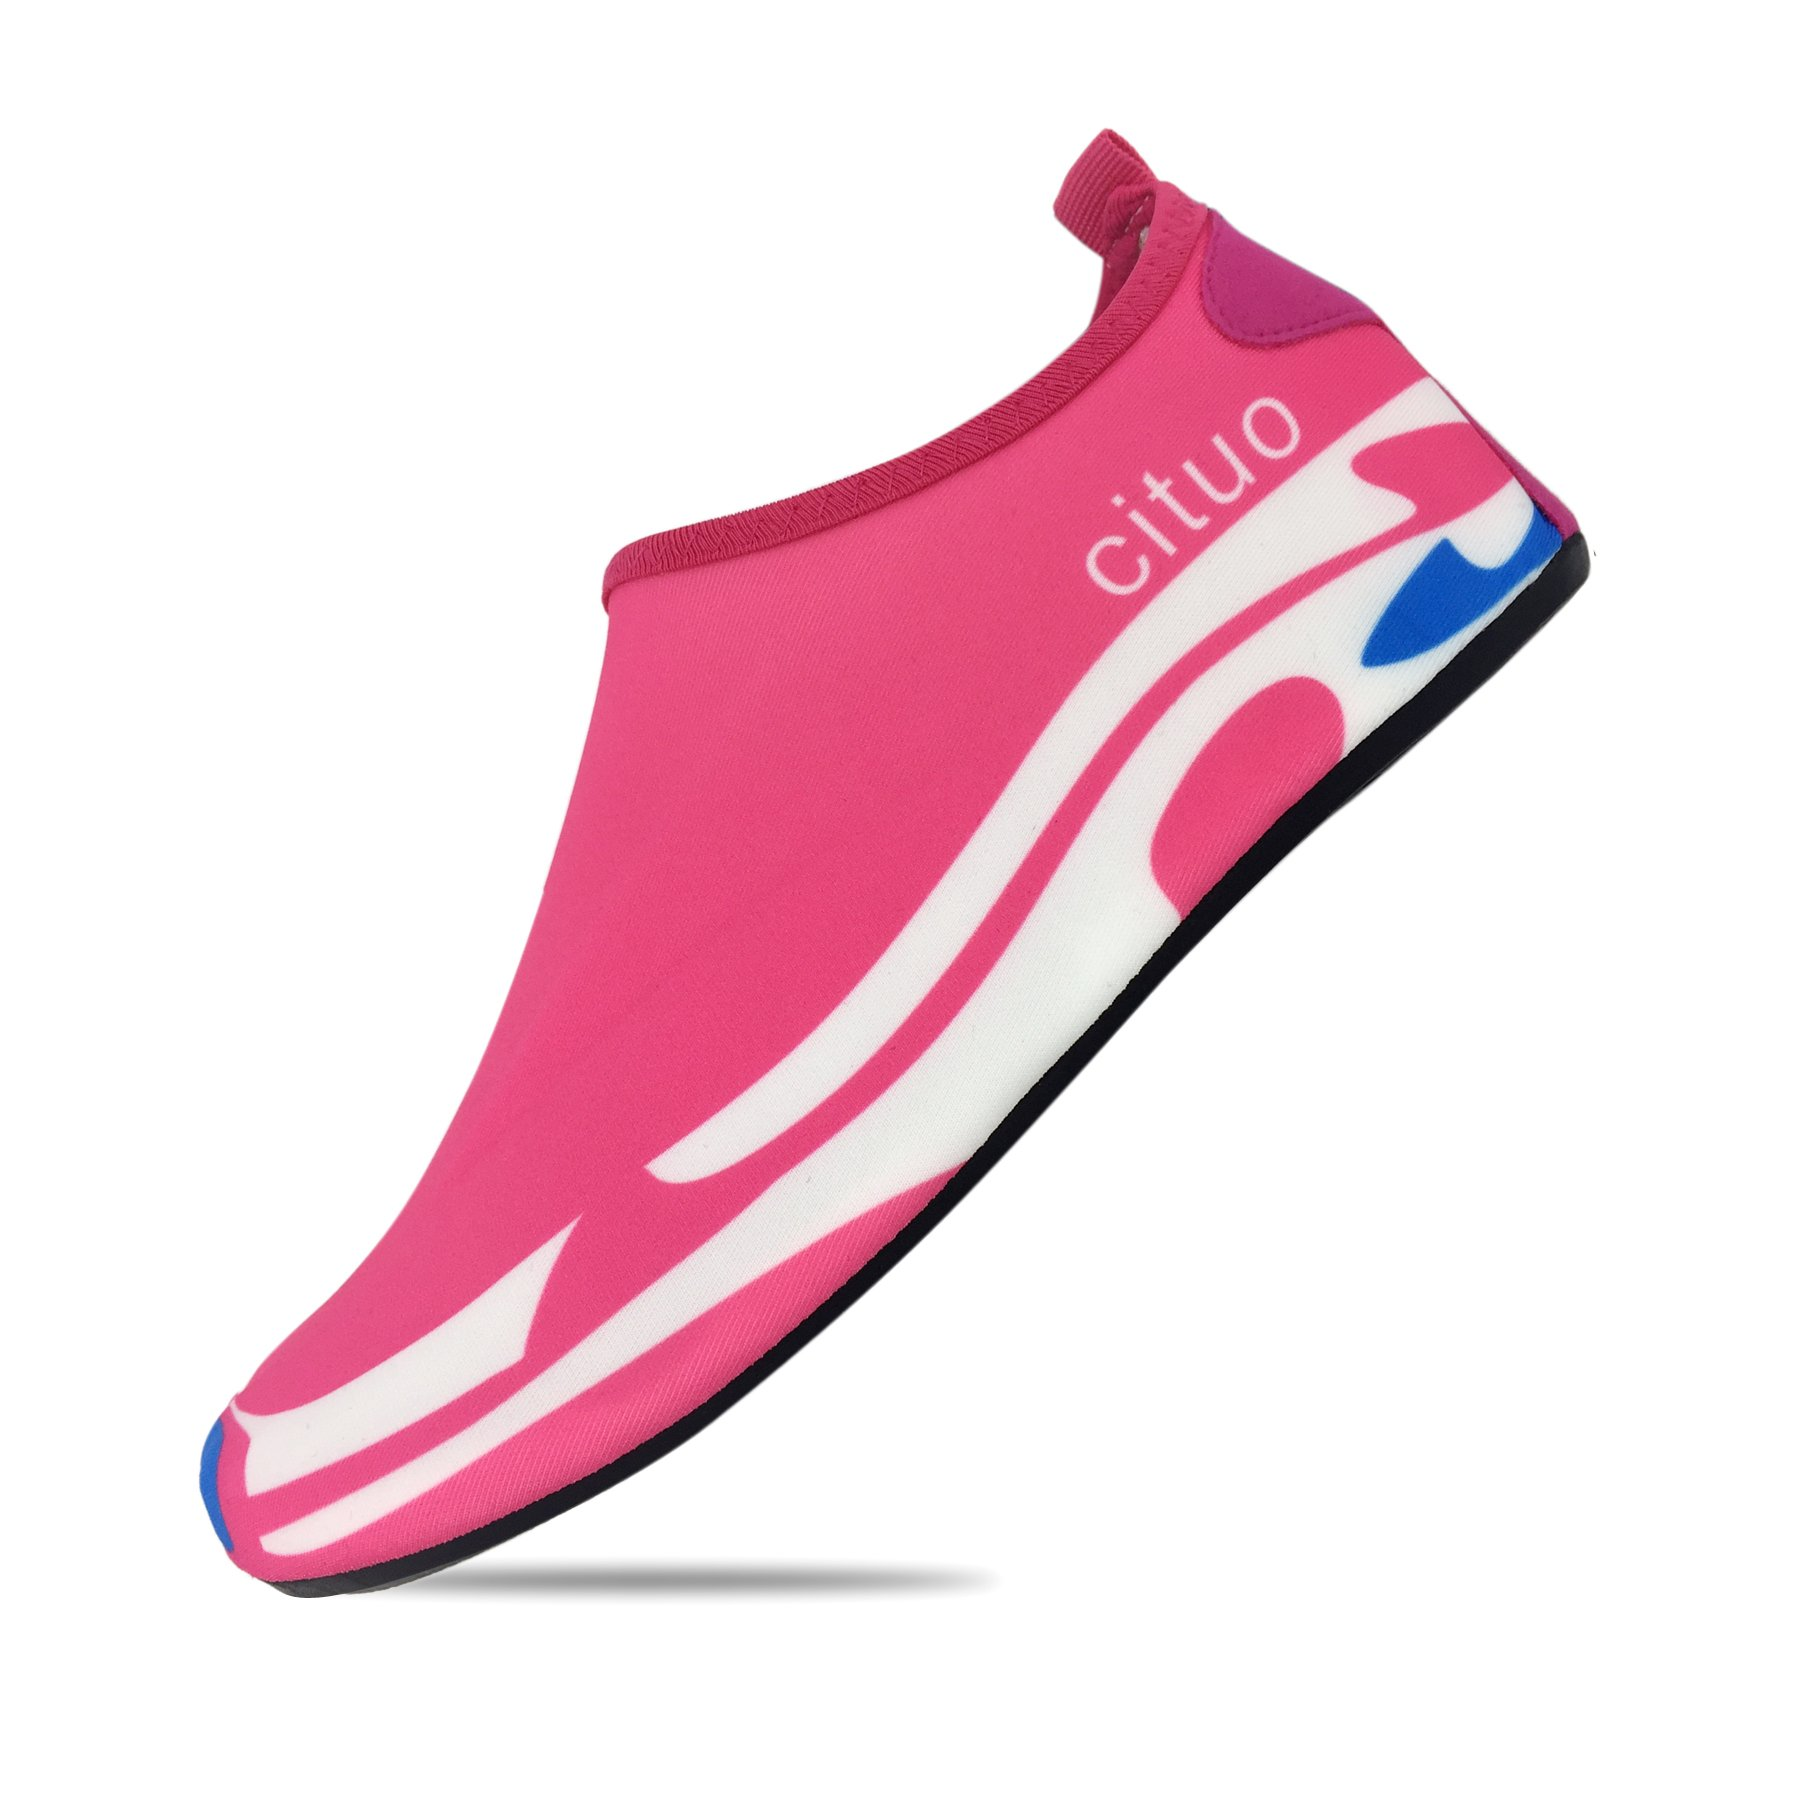 YOUR SMILE Women and Men Water Shoes Barefoot Quick-Dry Ultra-Light Breathable Aqua Socks for Beach Swim Yoga Exercise